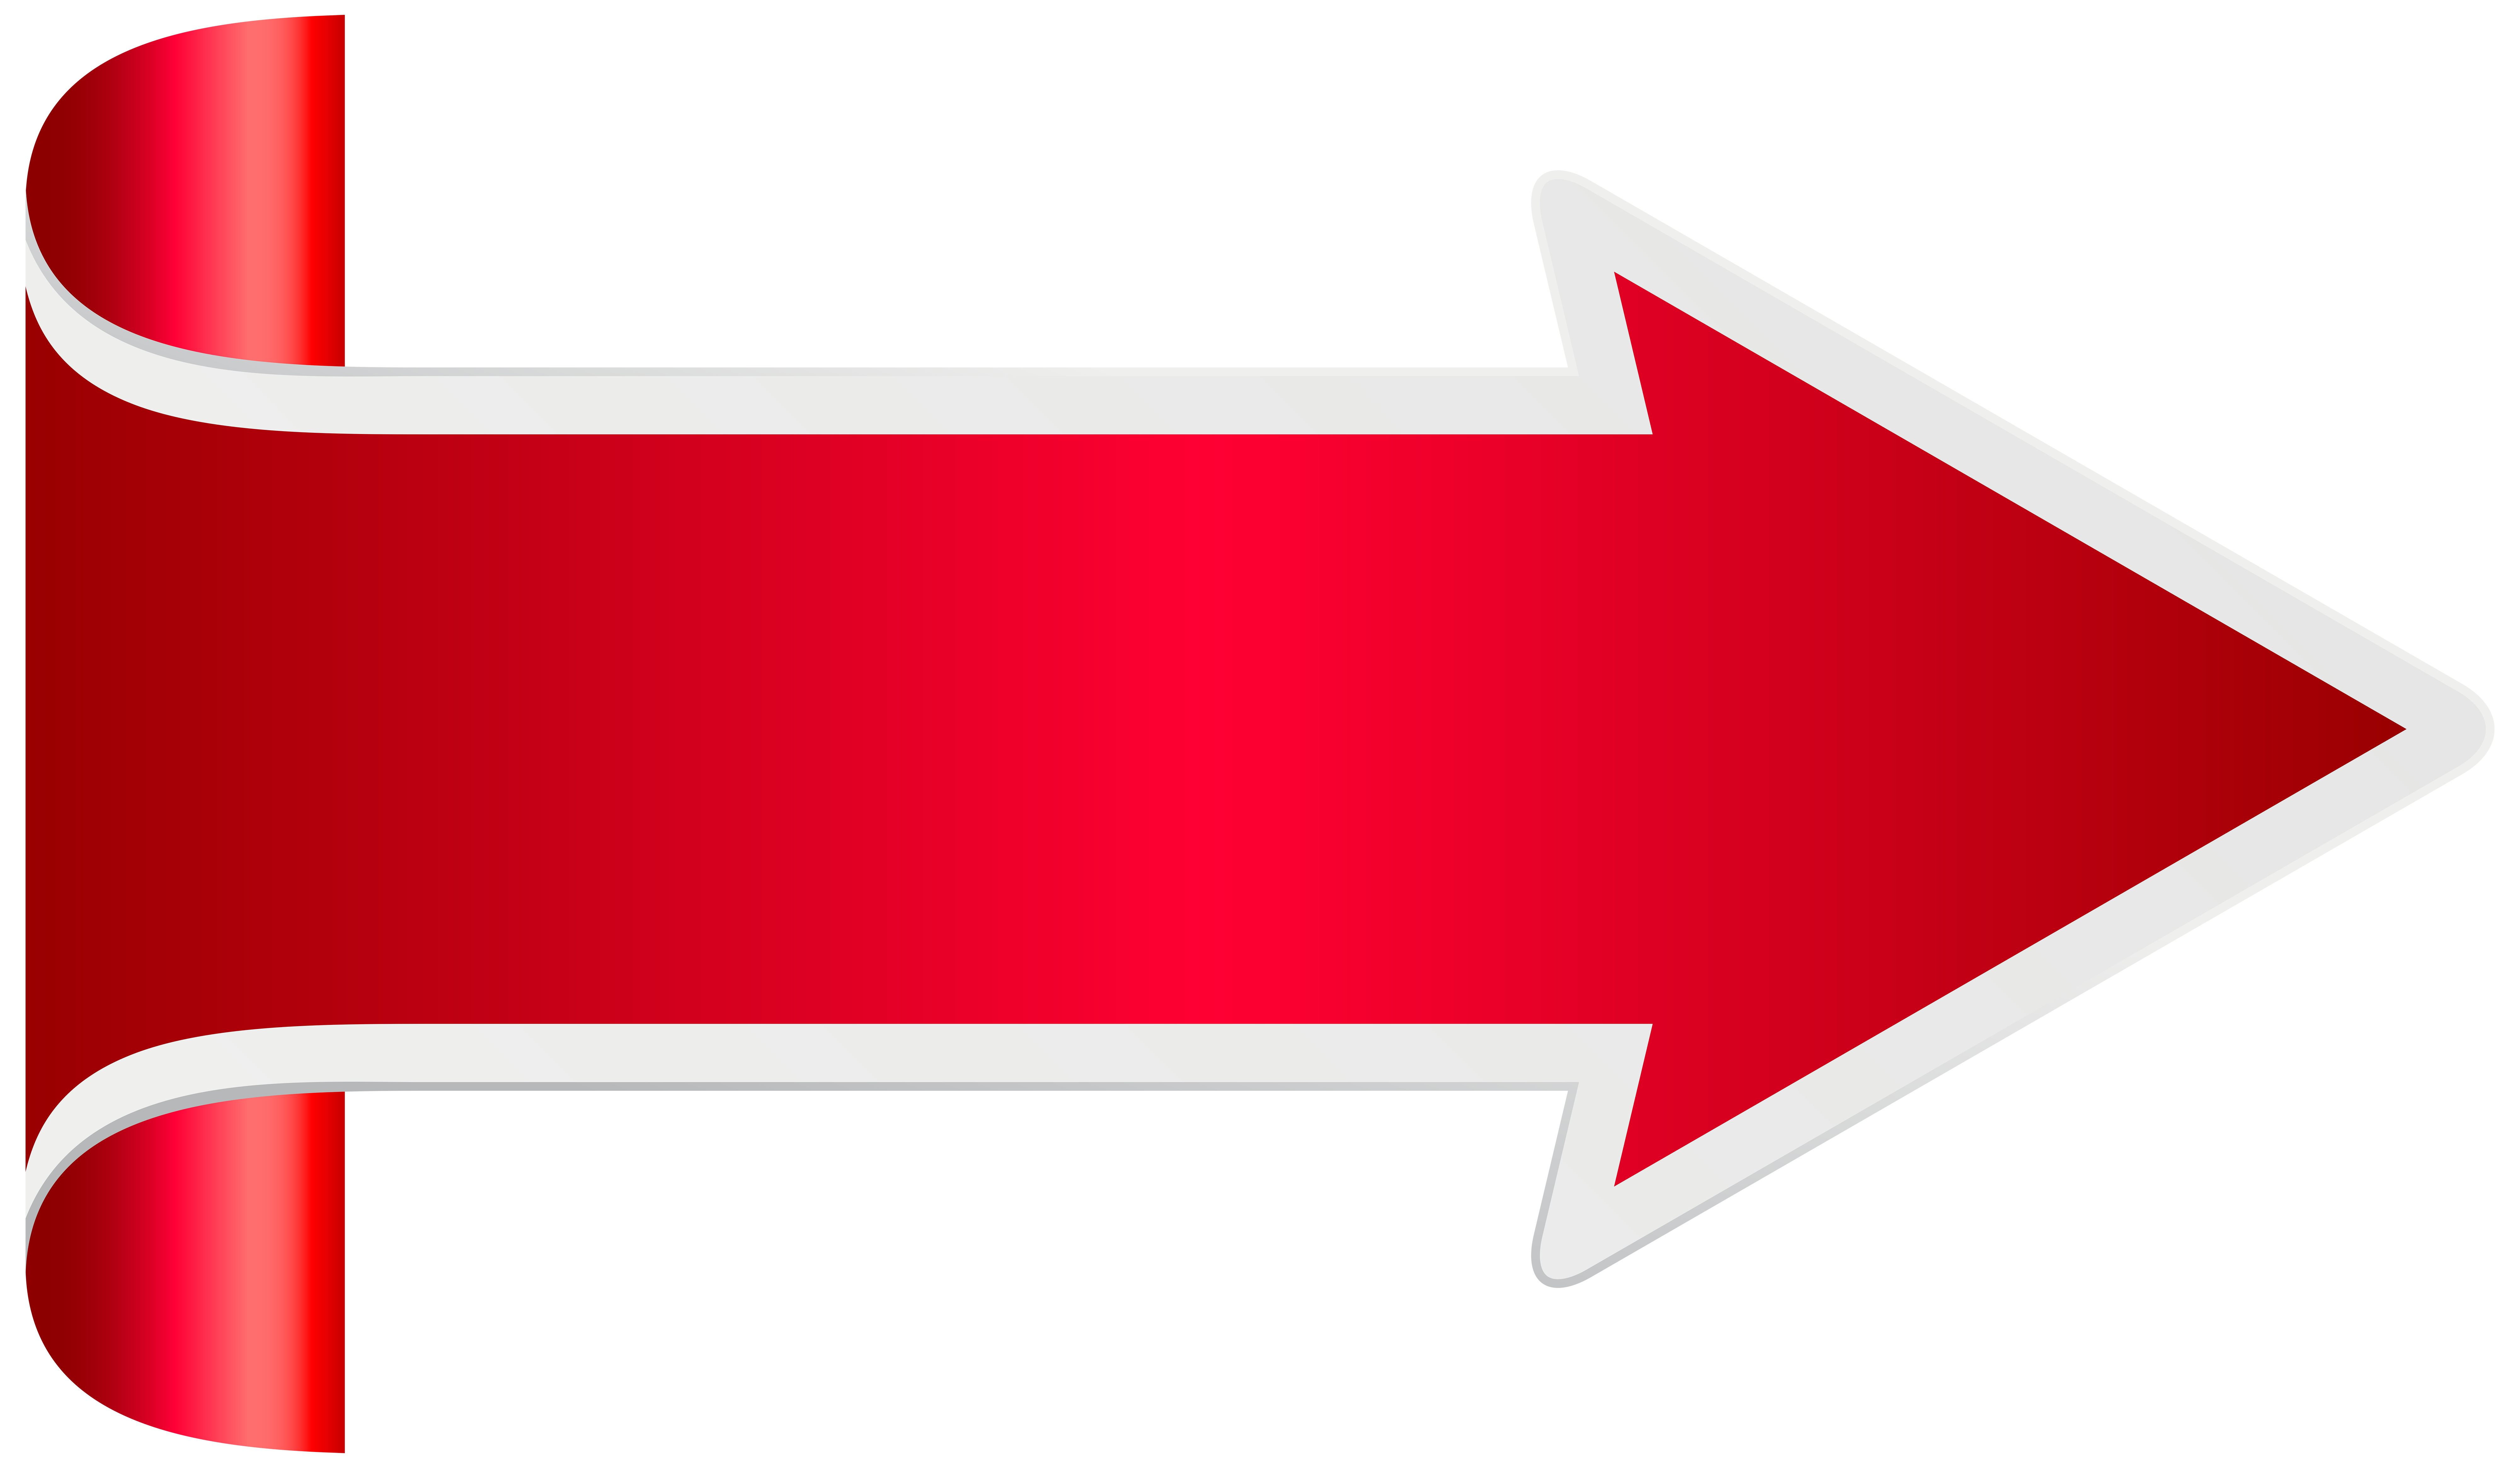 Clipart red arrow banner free stock Red Arrow PNG Clip Art Transparent Image   Gallery Yopriceville ... banner free stock